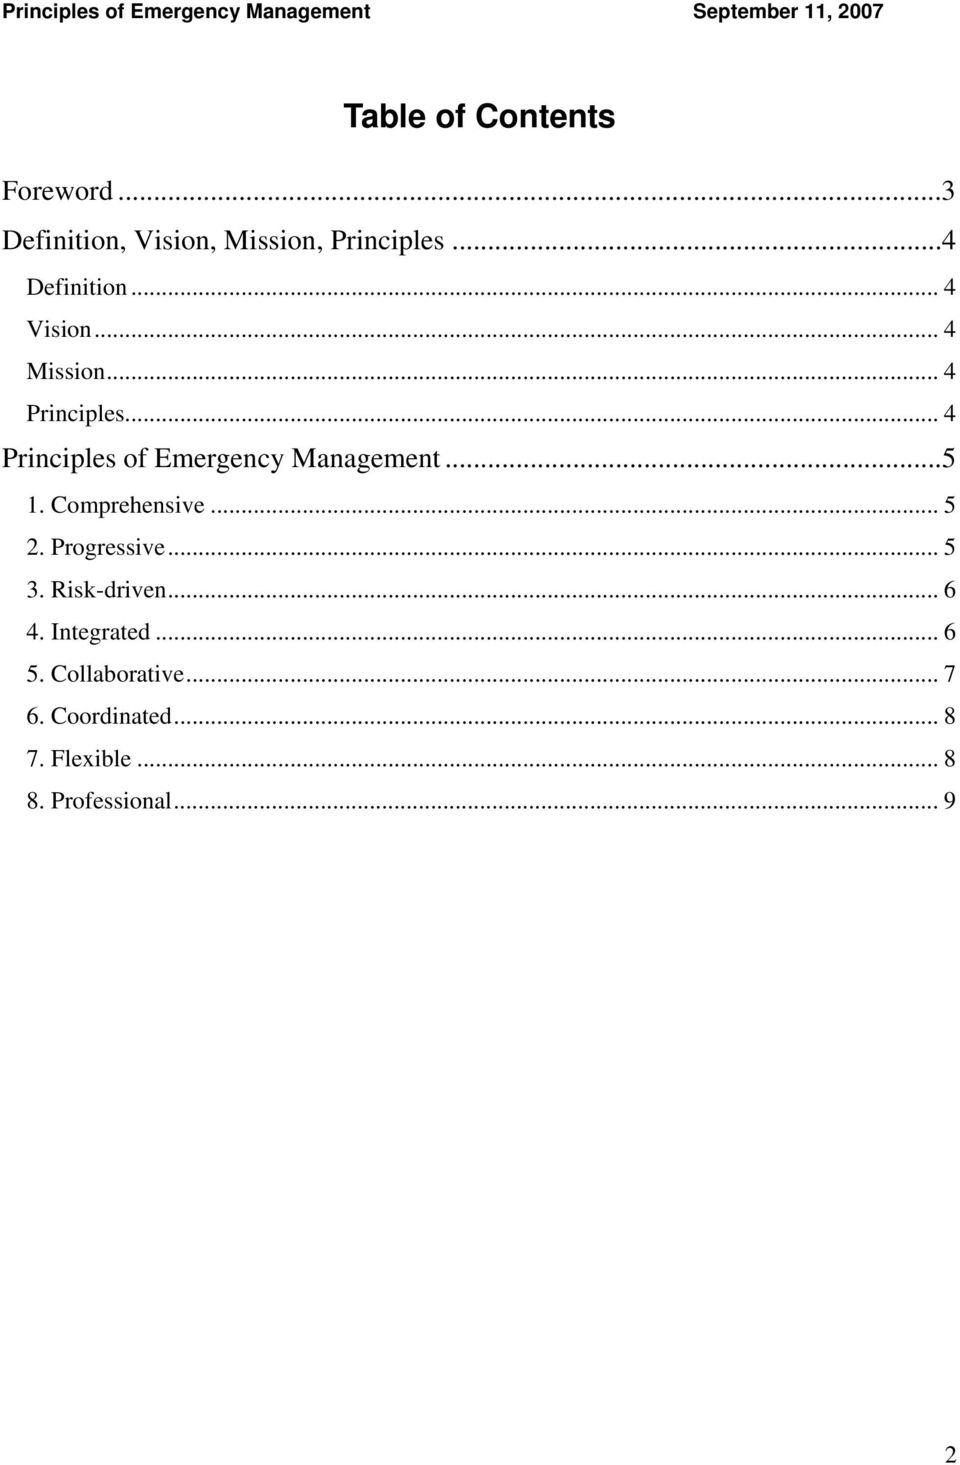 .. 4 Principles of Emergency Management...5 1. Comprehensive... 5 2. Progressive.